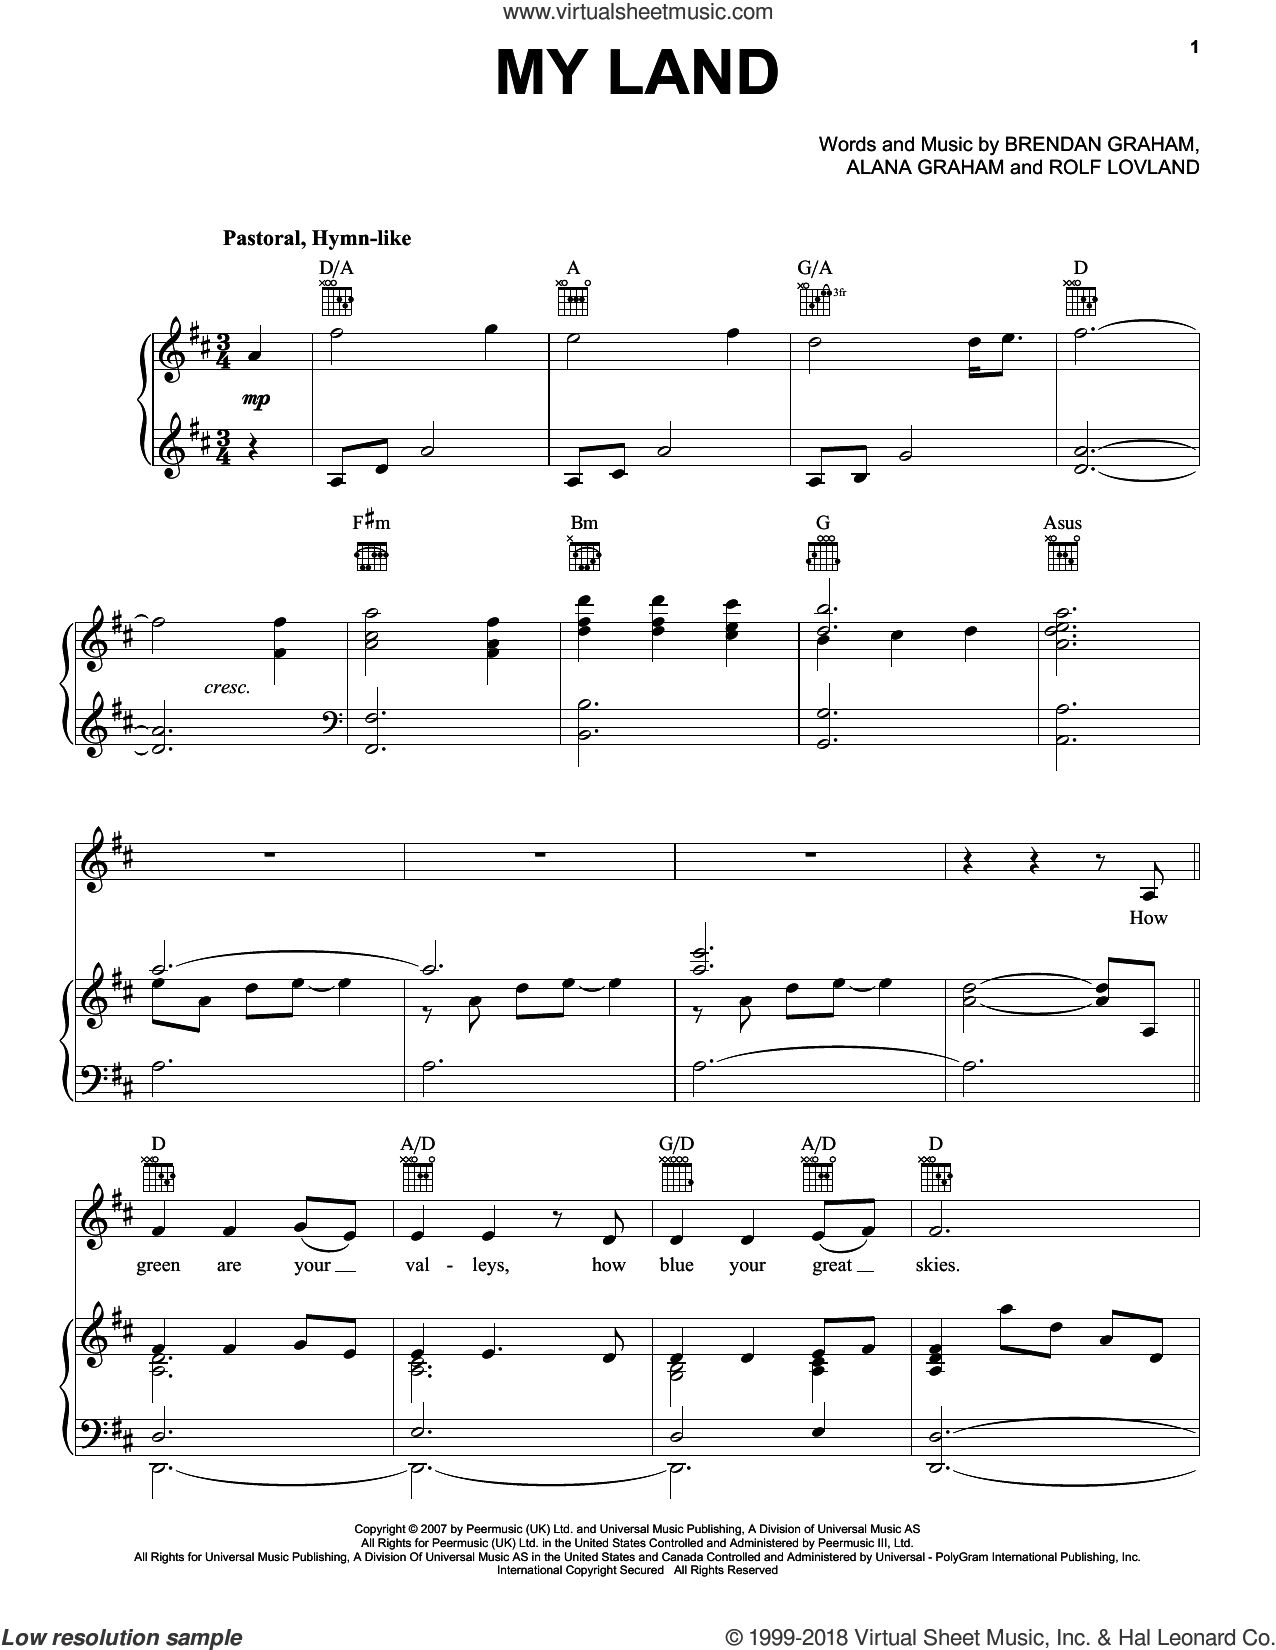 My Land sheet music for voice, piano or guitar by Rolf Lovland, Celtic Thunder, Alana Graham and Brendan Graham. Score Image Preview.